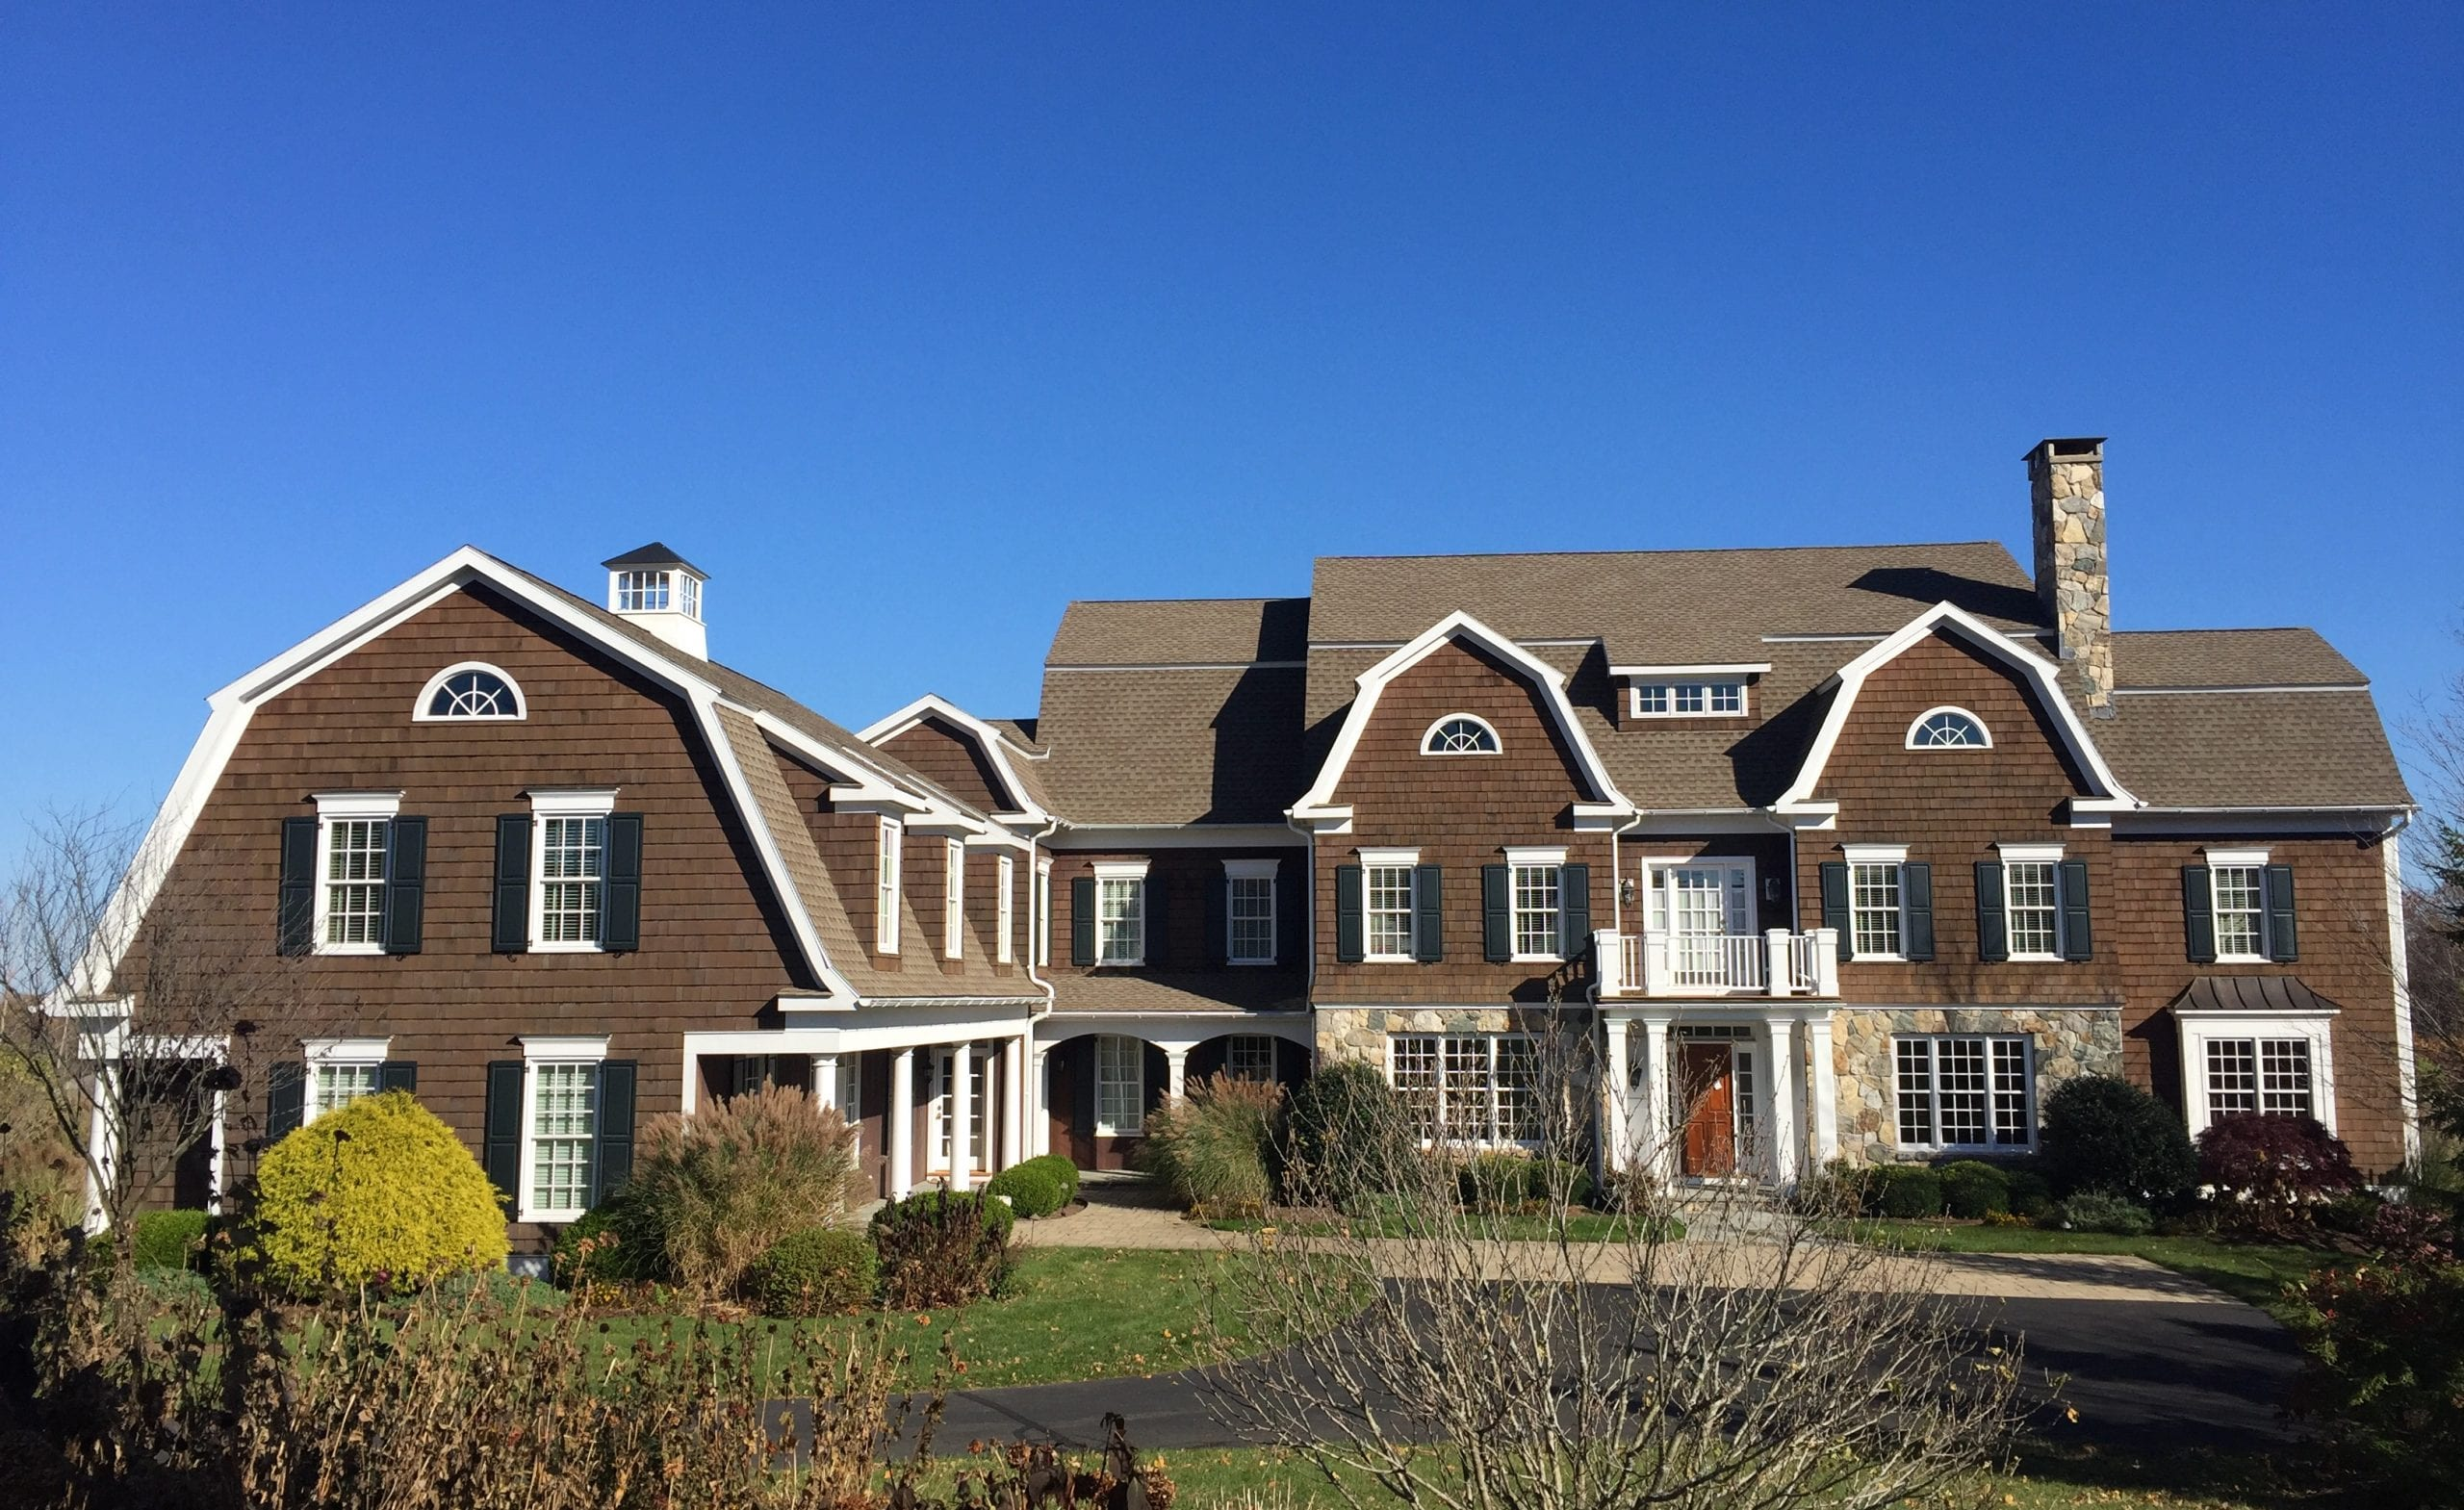 Old Stone Crossing Home Sells For 1 4 Million We Ha West Hartford News